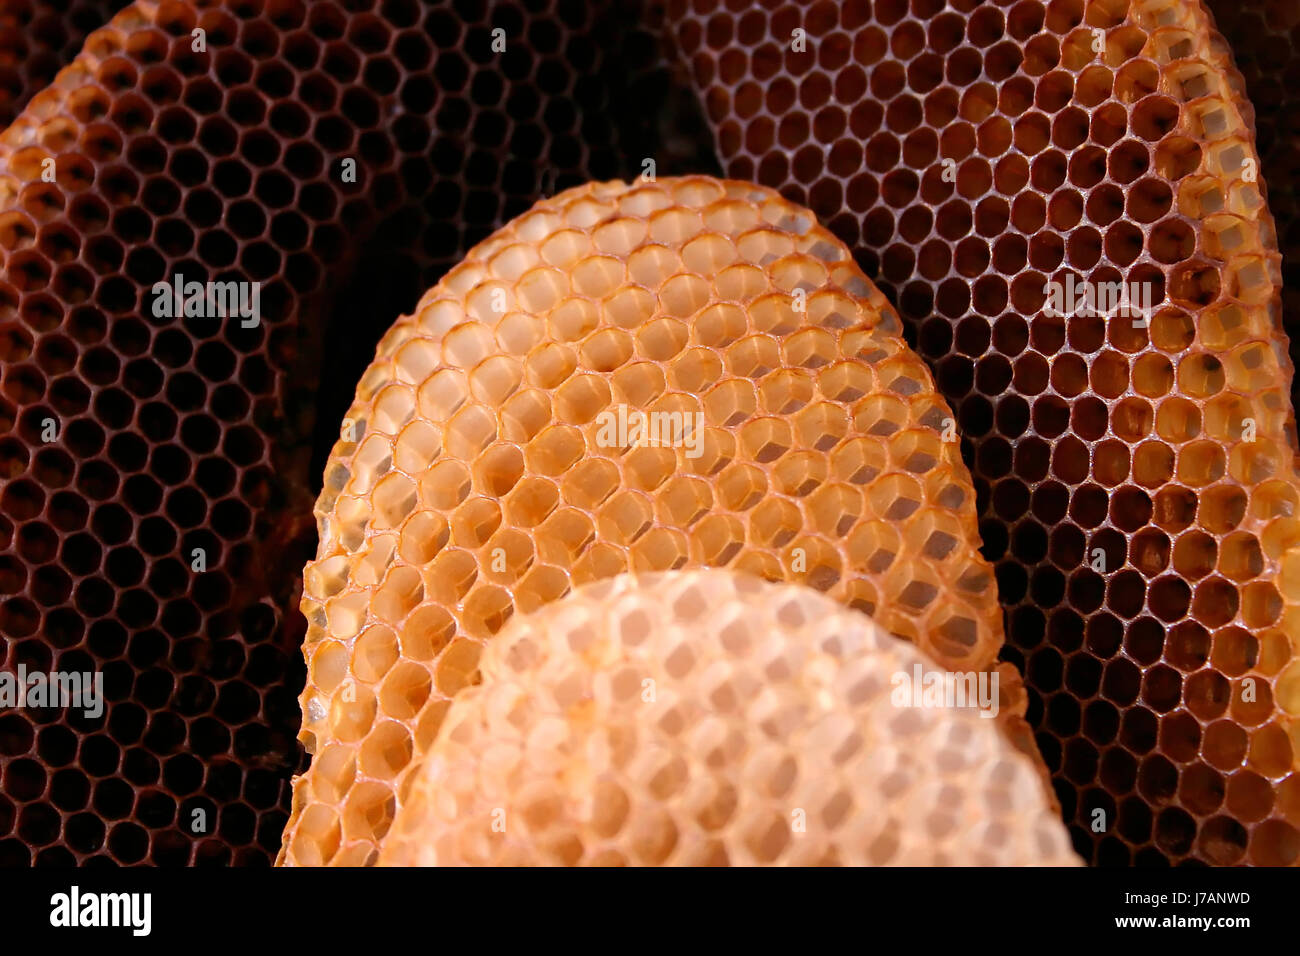 insect cell comb pattern honeycomb structure combing bee macro Stock